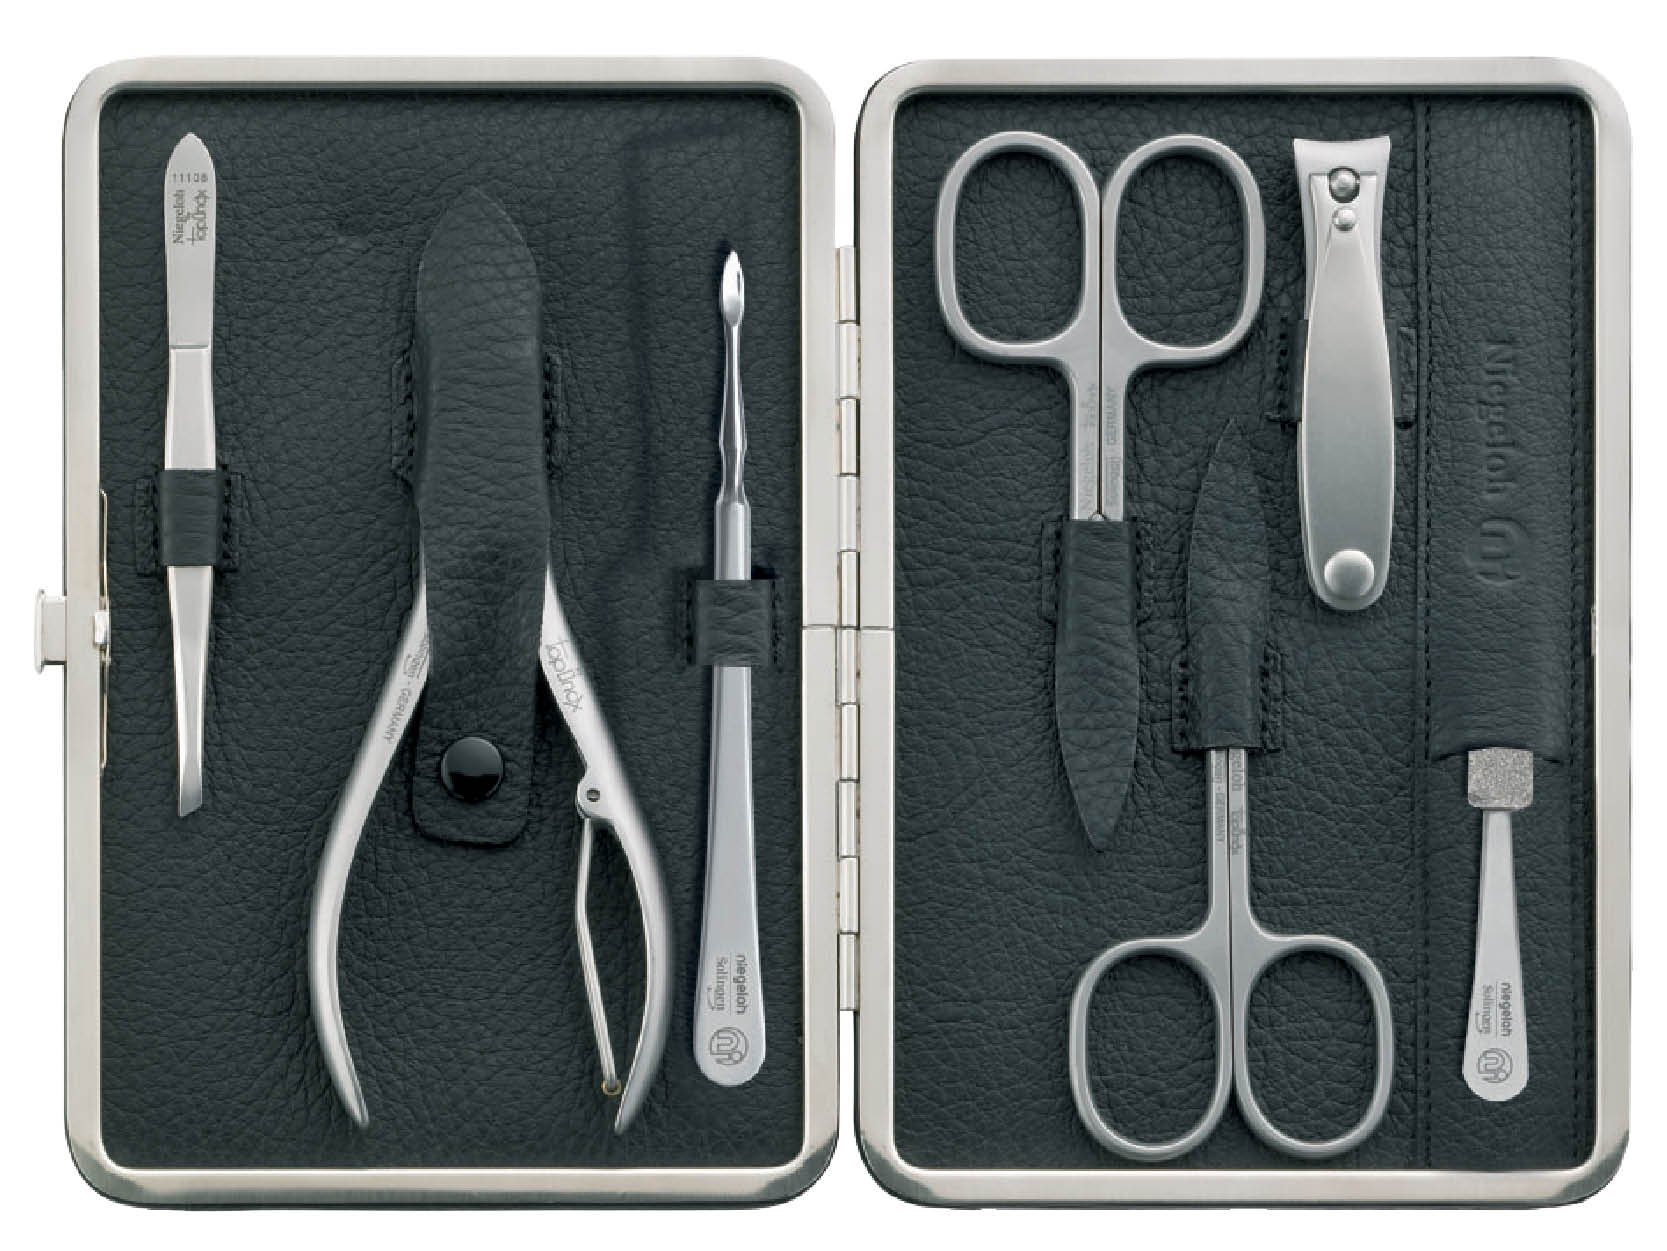 Niegeloh Topinox Capri Xl Solingen Manicure Set with Gift Box Made in Germany